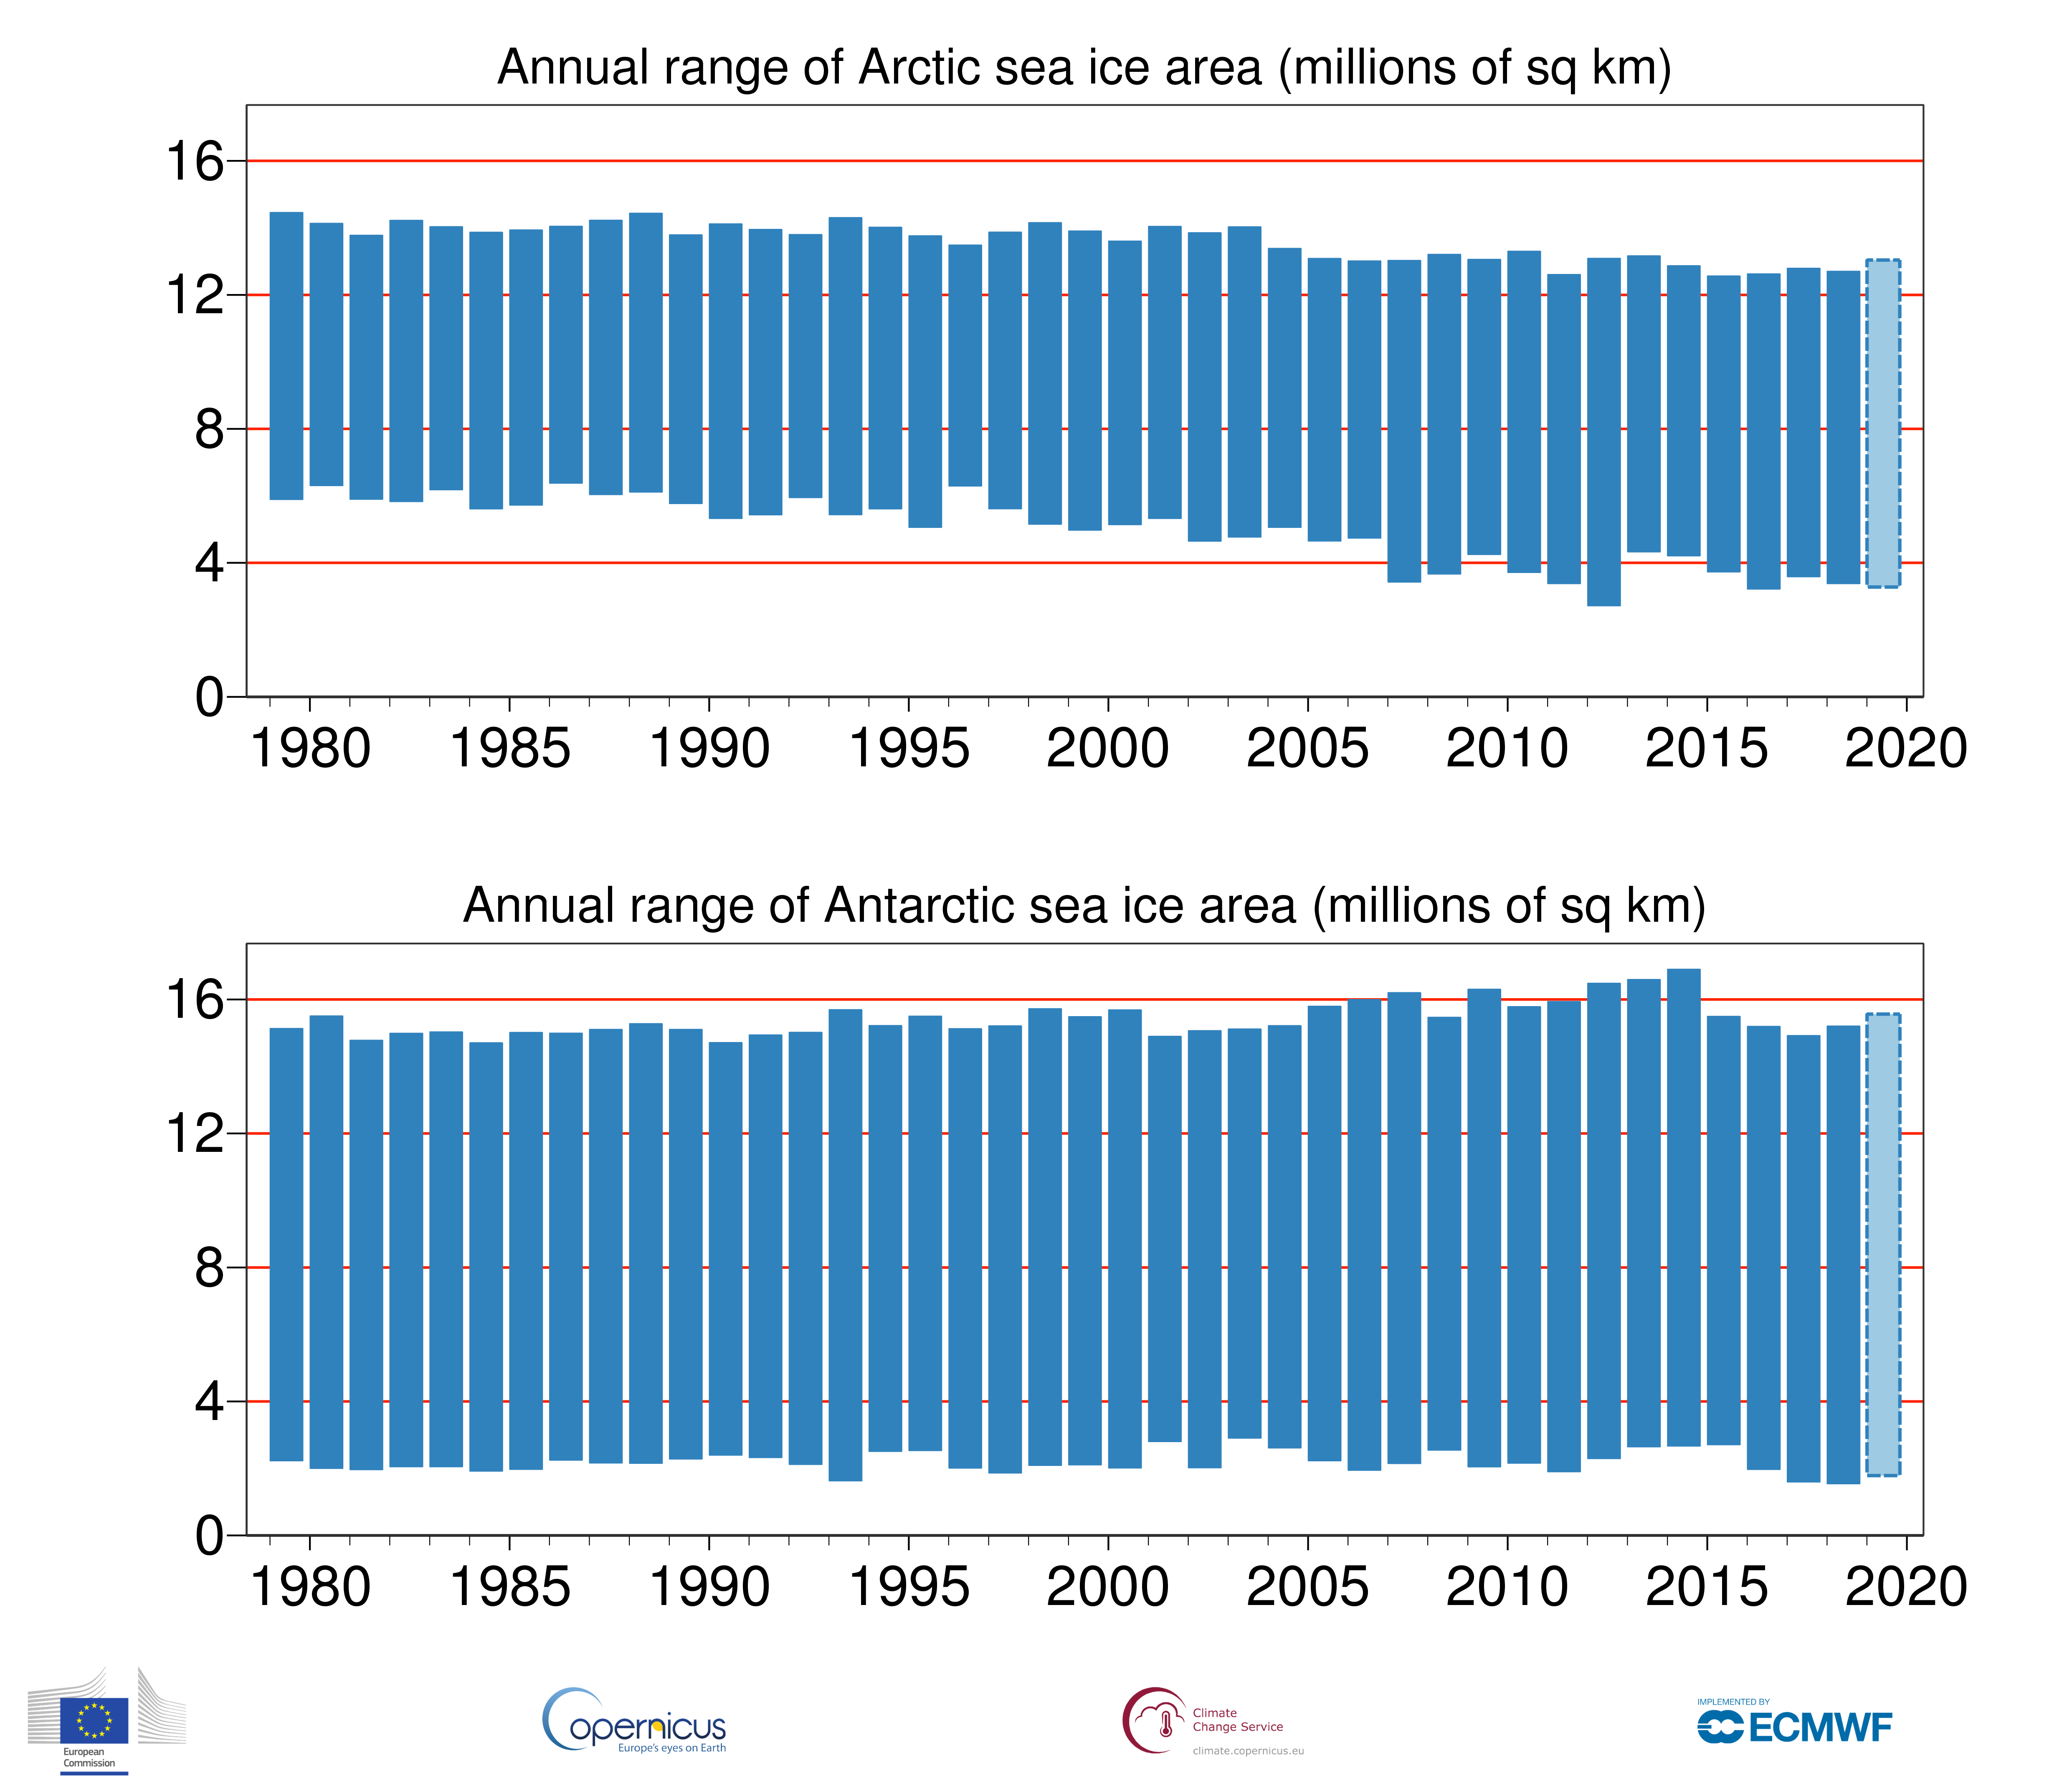 photo:Copernicus Climate Change Service/ECMWF;desc:Annual range of sea-ice area from summer minimum to winter maximum for the Arctic (upper) and Antarctic (lower) based on monthly average values from 1979 to 2018. Maxima and minima for 2019 are based on the months of the year to date. Data source: ERA5